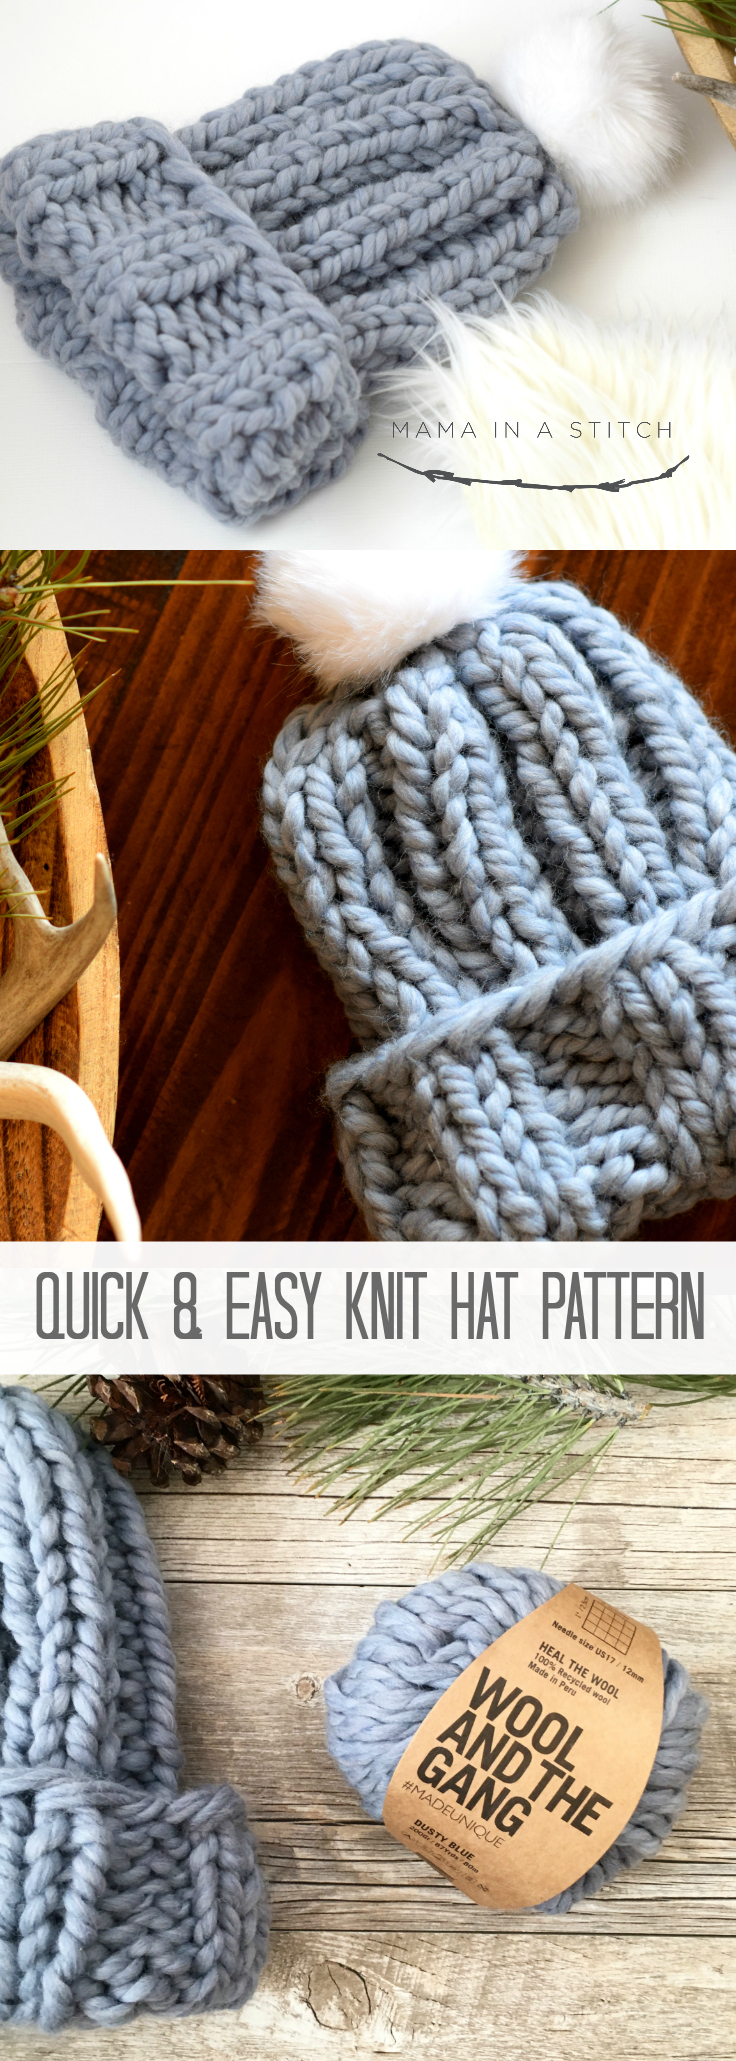 Quick Chunky Knit Hat Pattern Mama In A Stitch